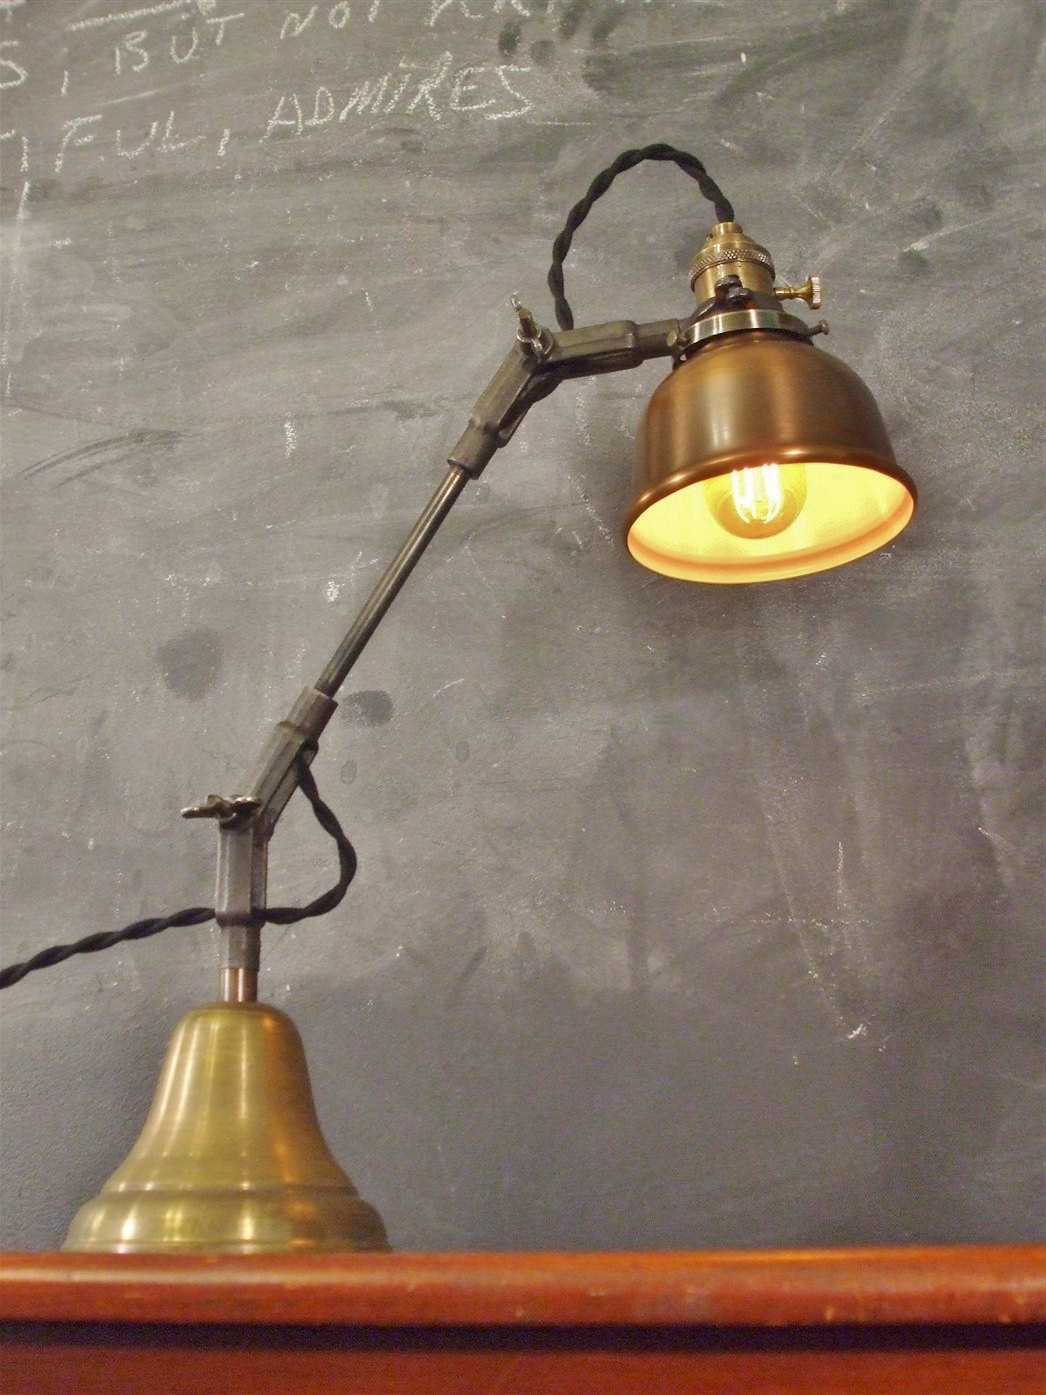 Best ideas about Industrial Desk Lamp . Save or Pin Vintage Industrial Desk Lamp Machine Age Task Light Cast Now.